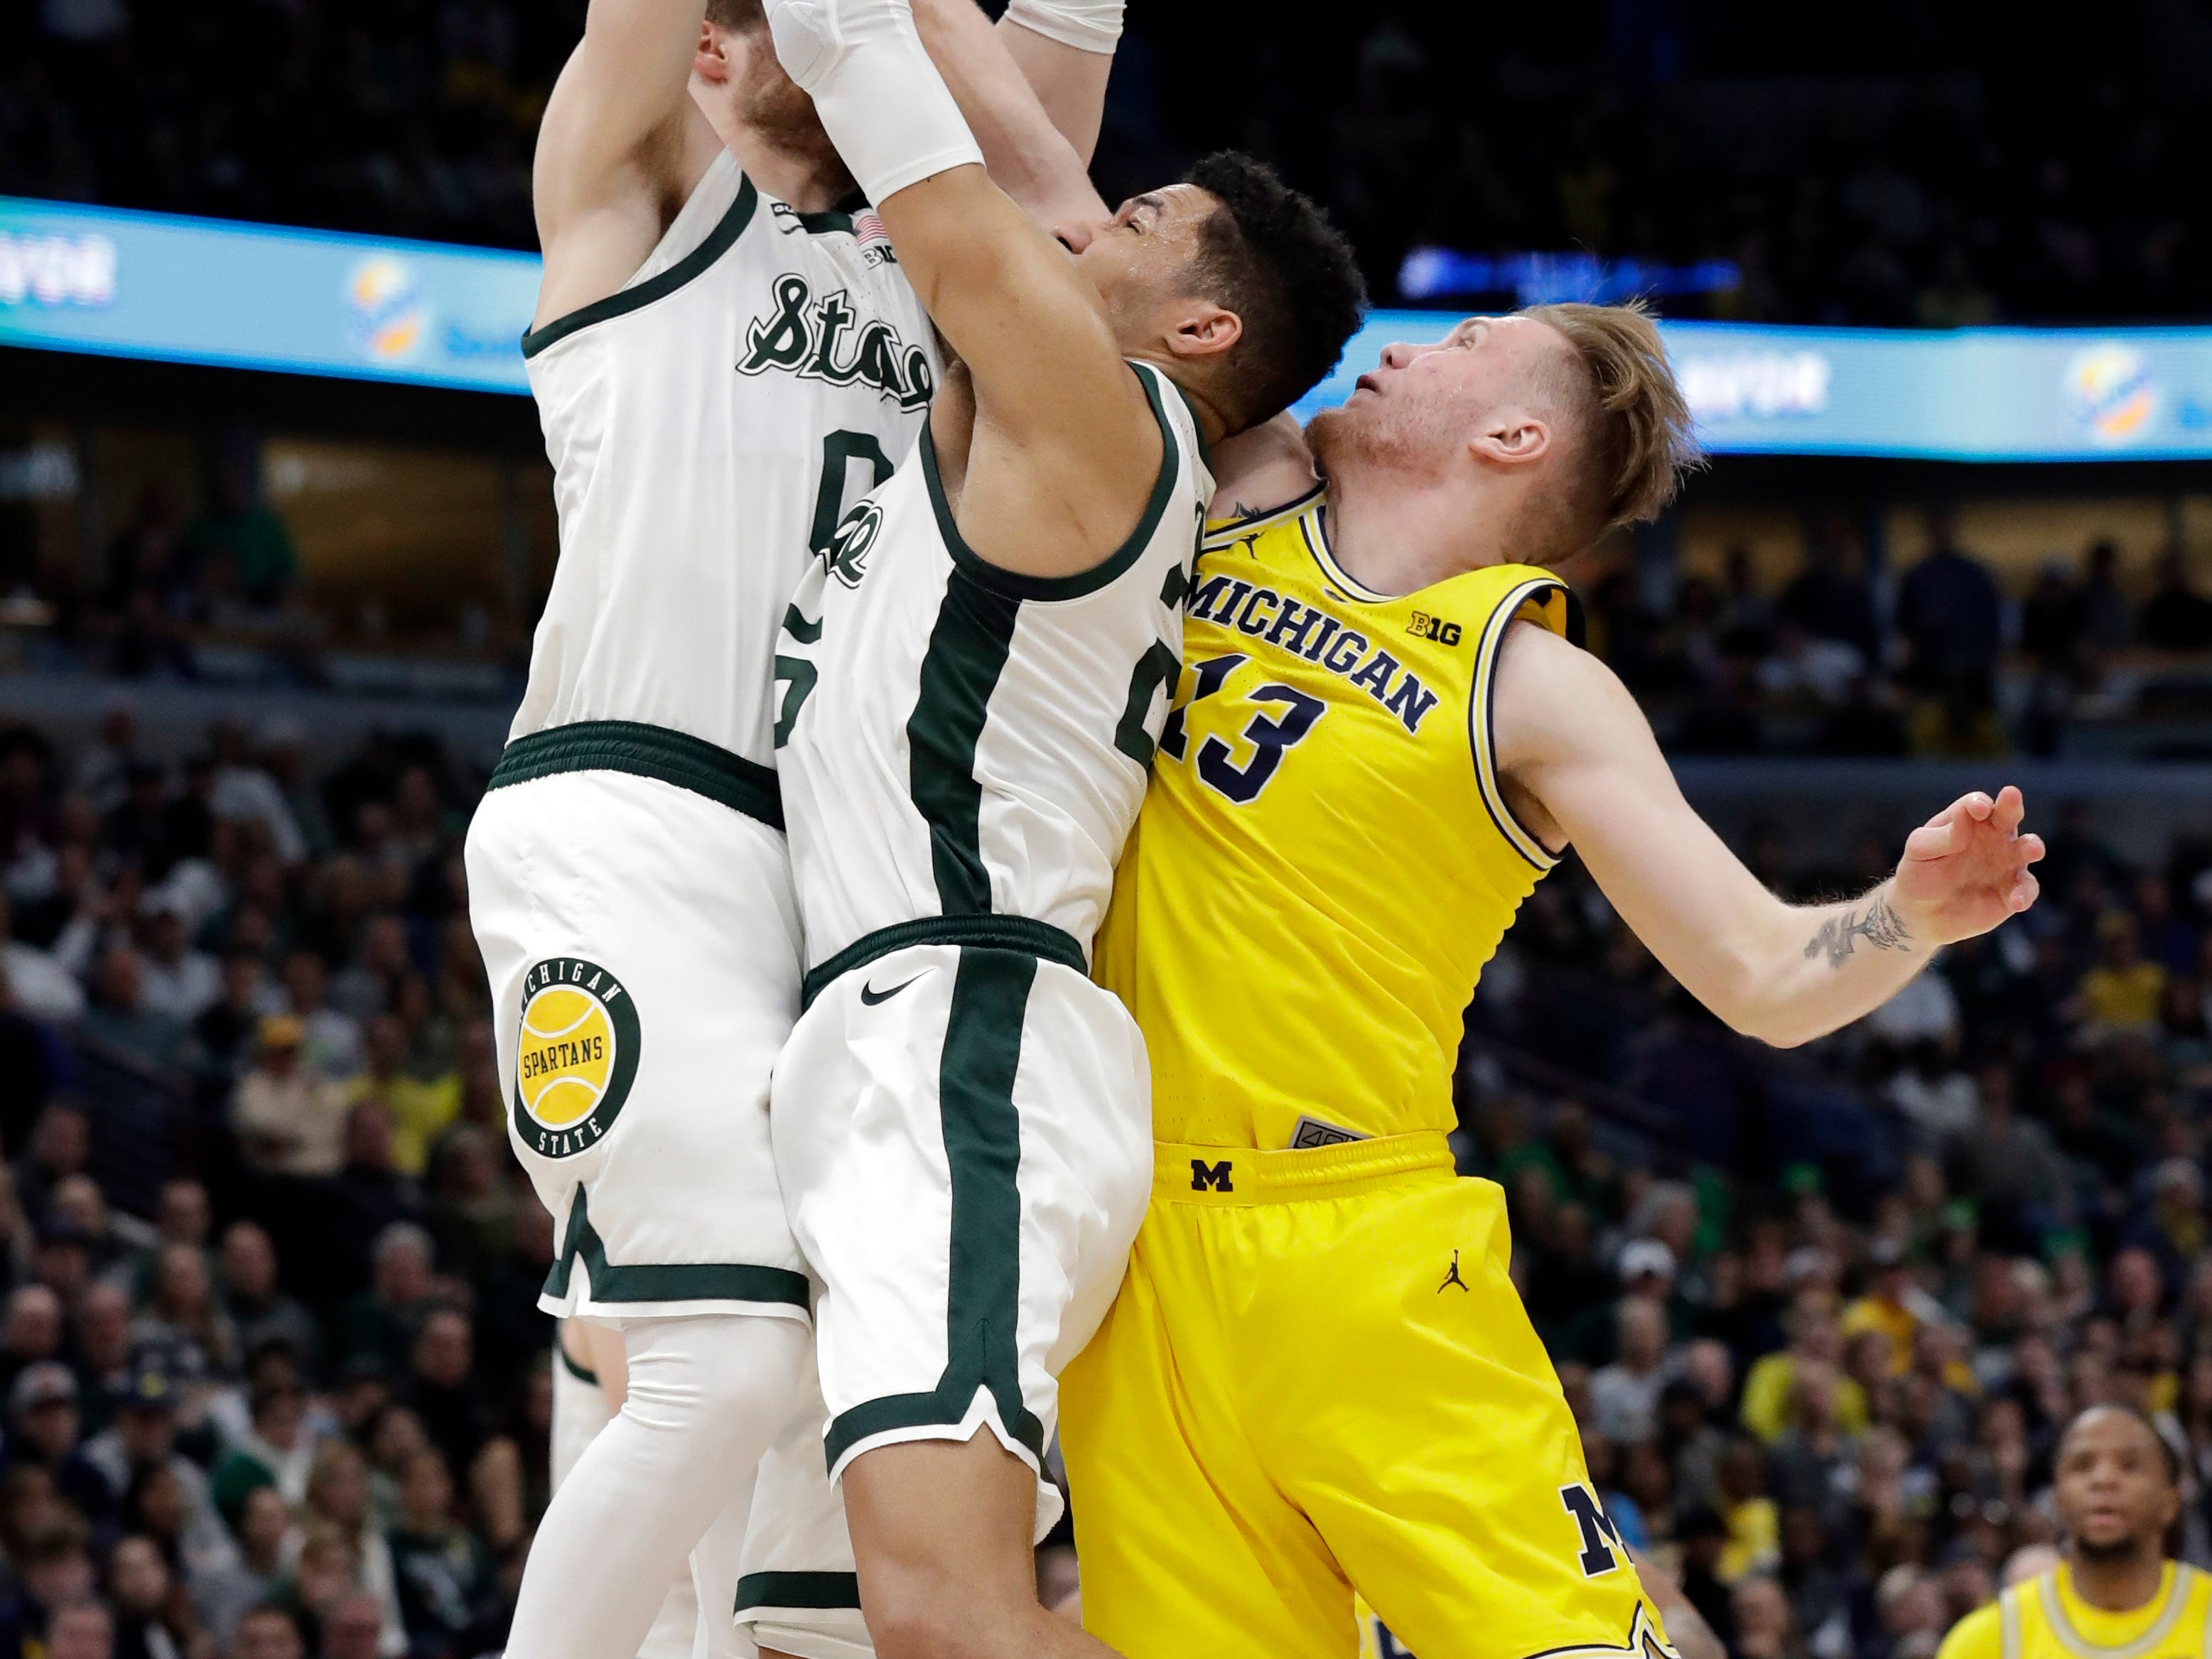 Michigan State's Kyle Ahrens (0), Kenny Goins (25) and Michigan's Ignas Brazdeikis (13) battle for a rebound during the first half of an NCAA college basketball championship game in the Big Ten Conference tournament, Sunday, March 17, 2019, in Chicago. Ahrens was injured on this play and taken off the court.